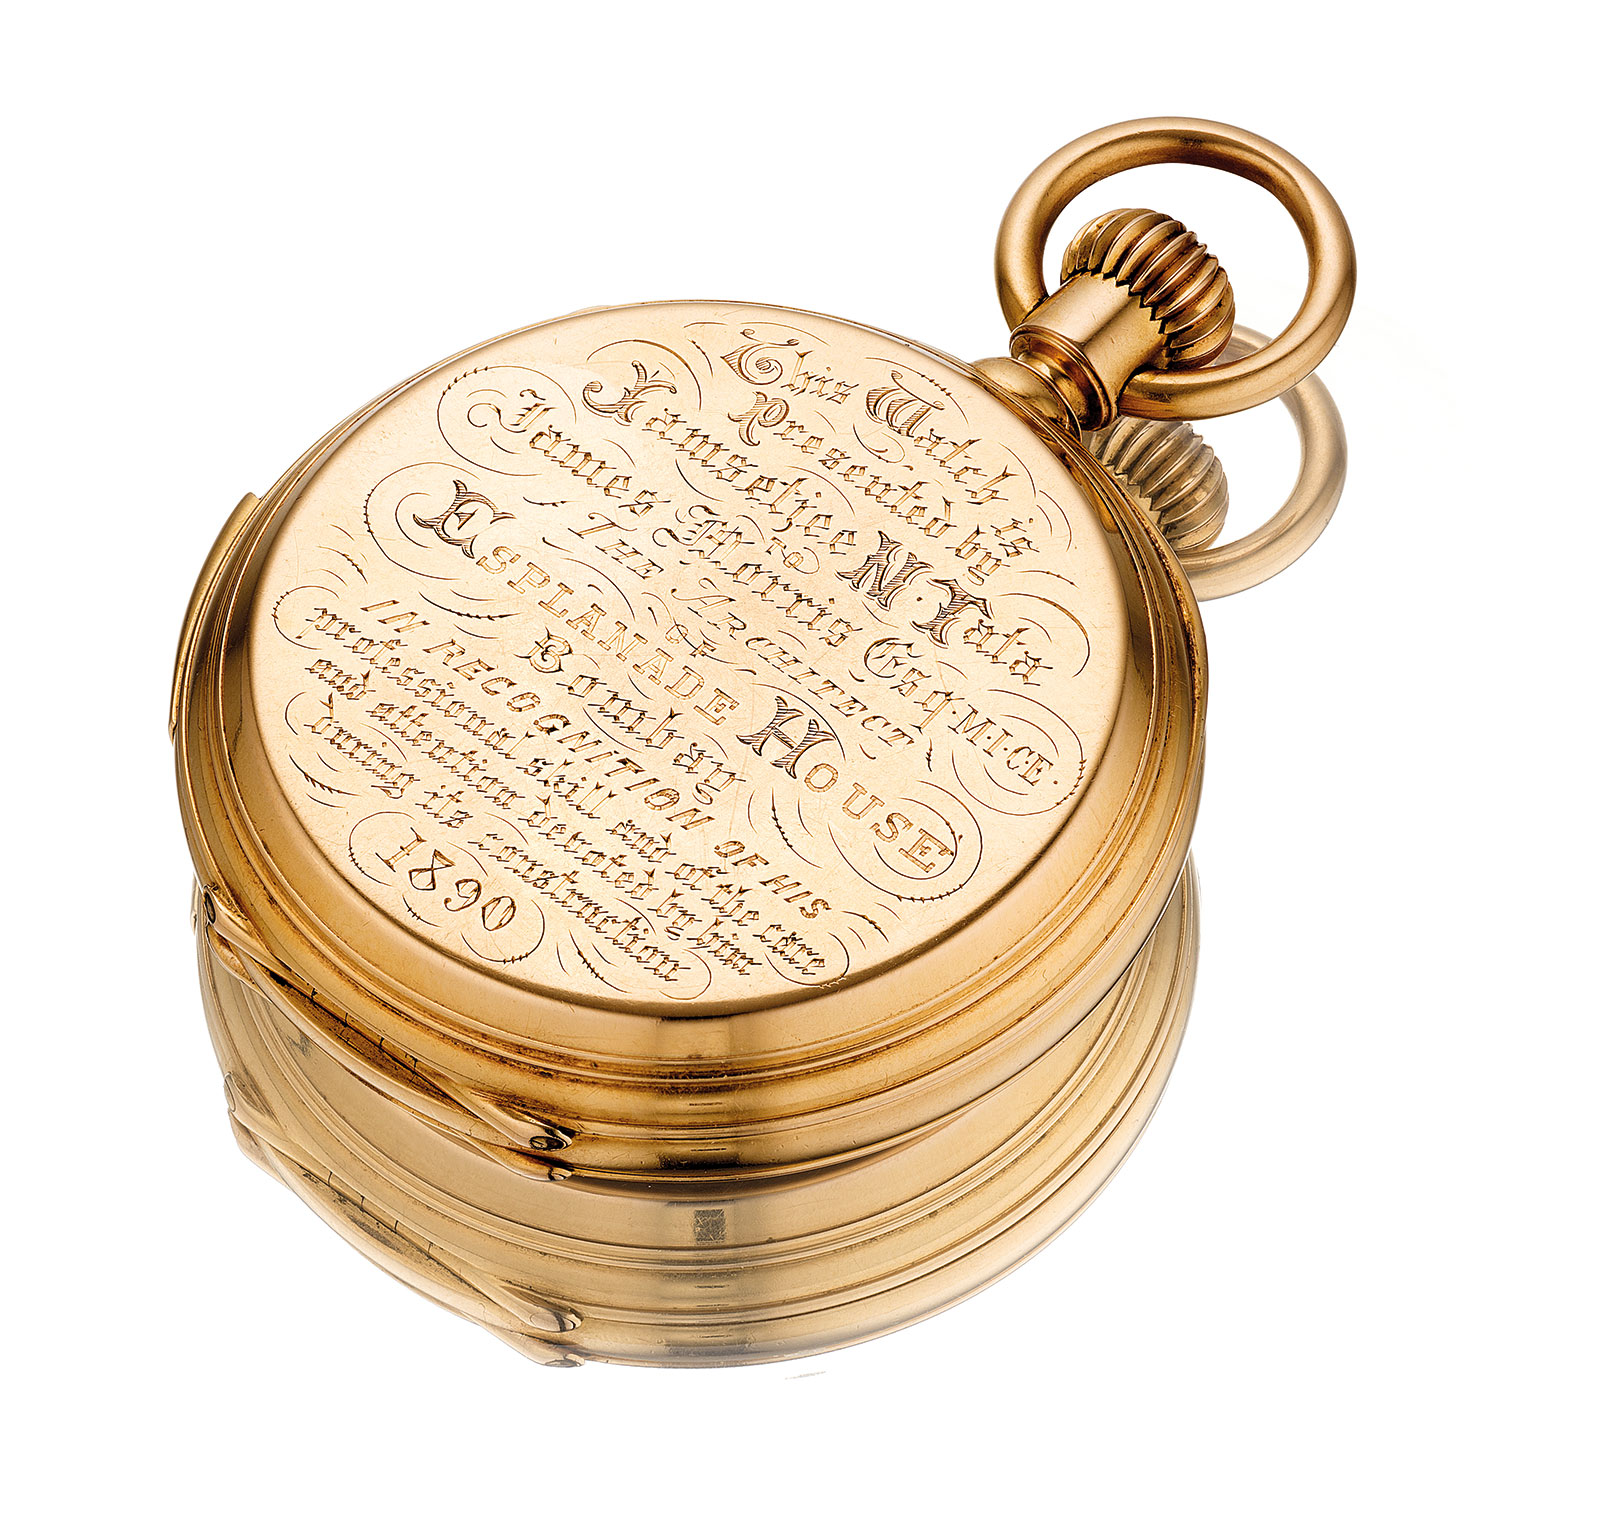 Tata Patek pocket watch Phillips 2